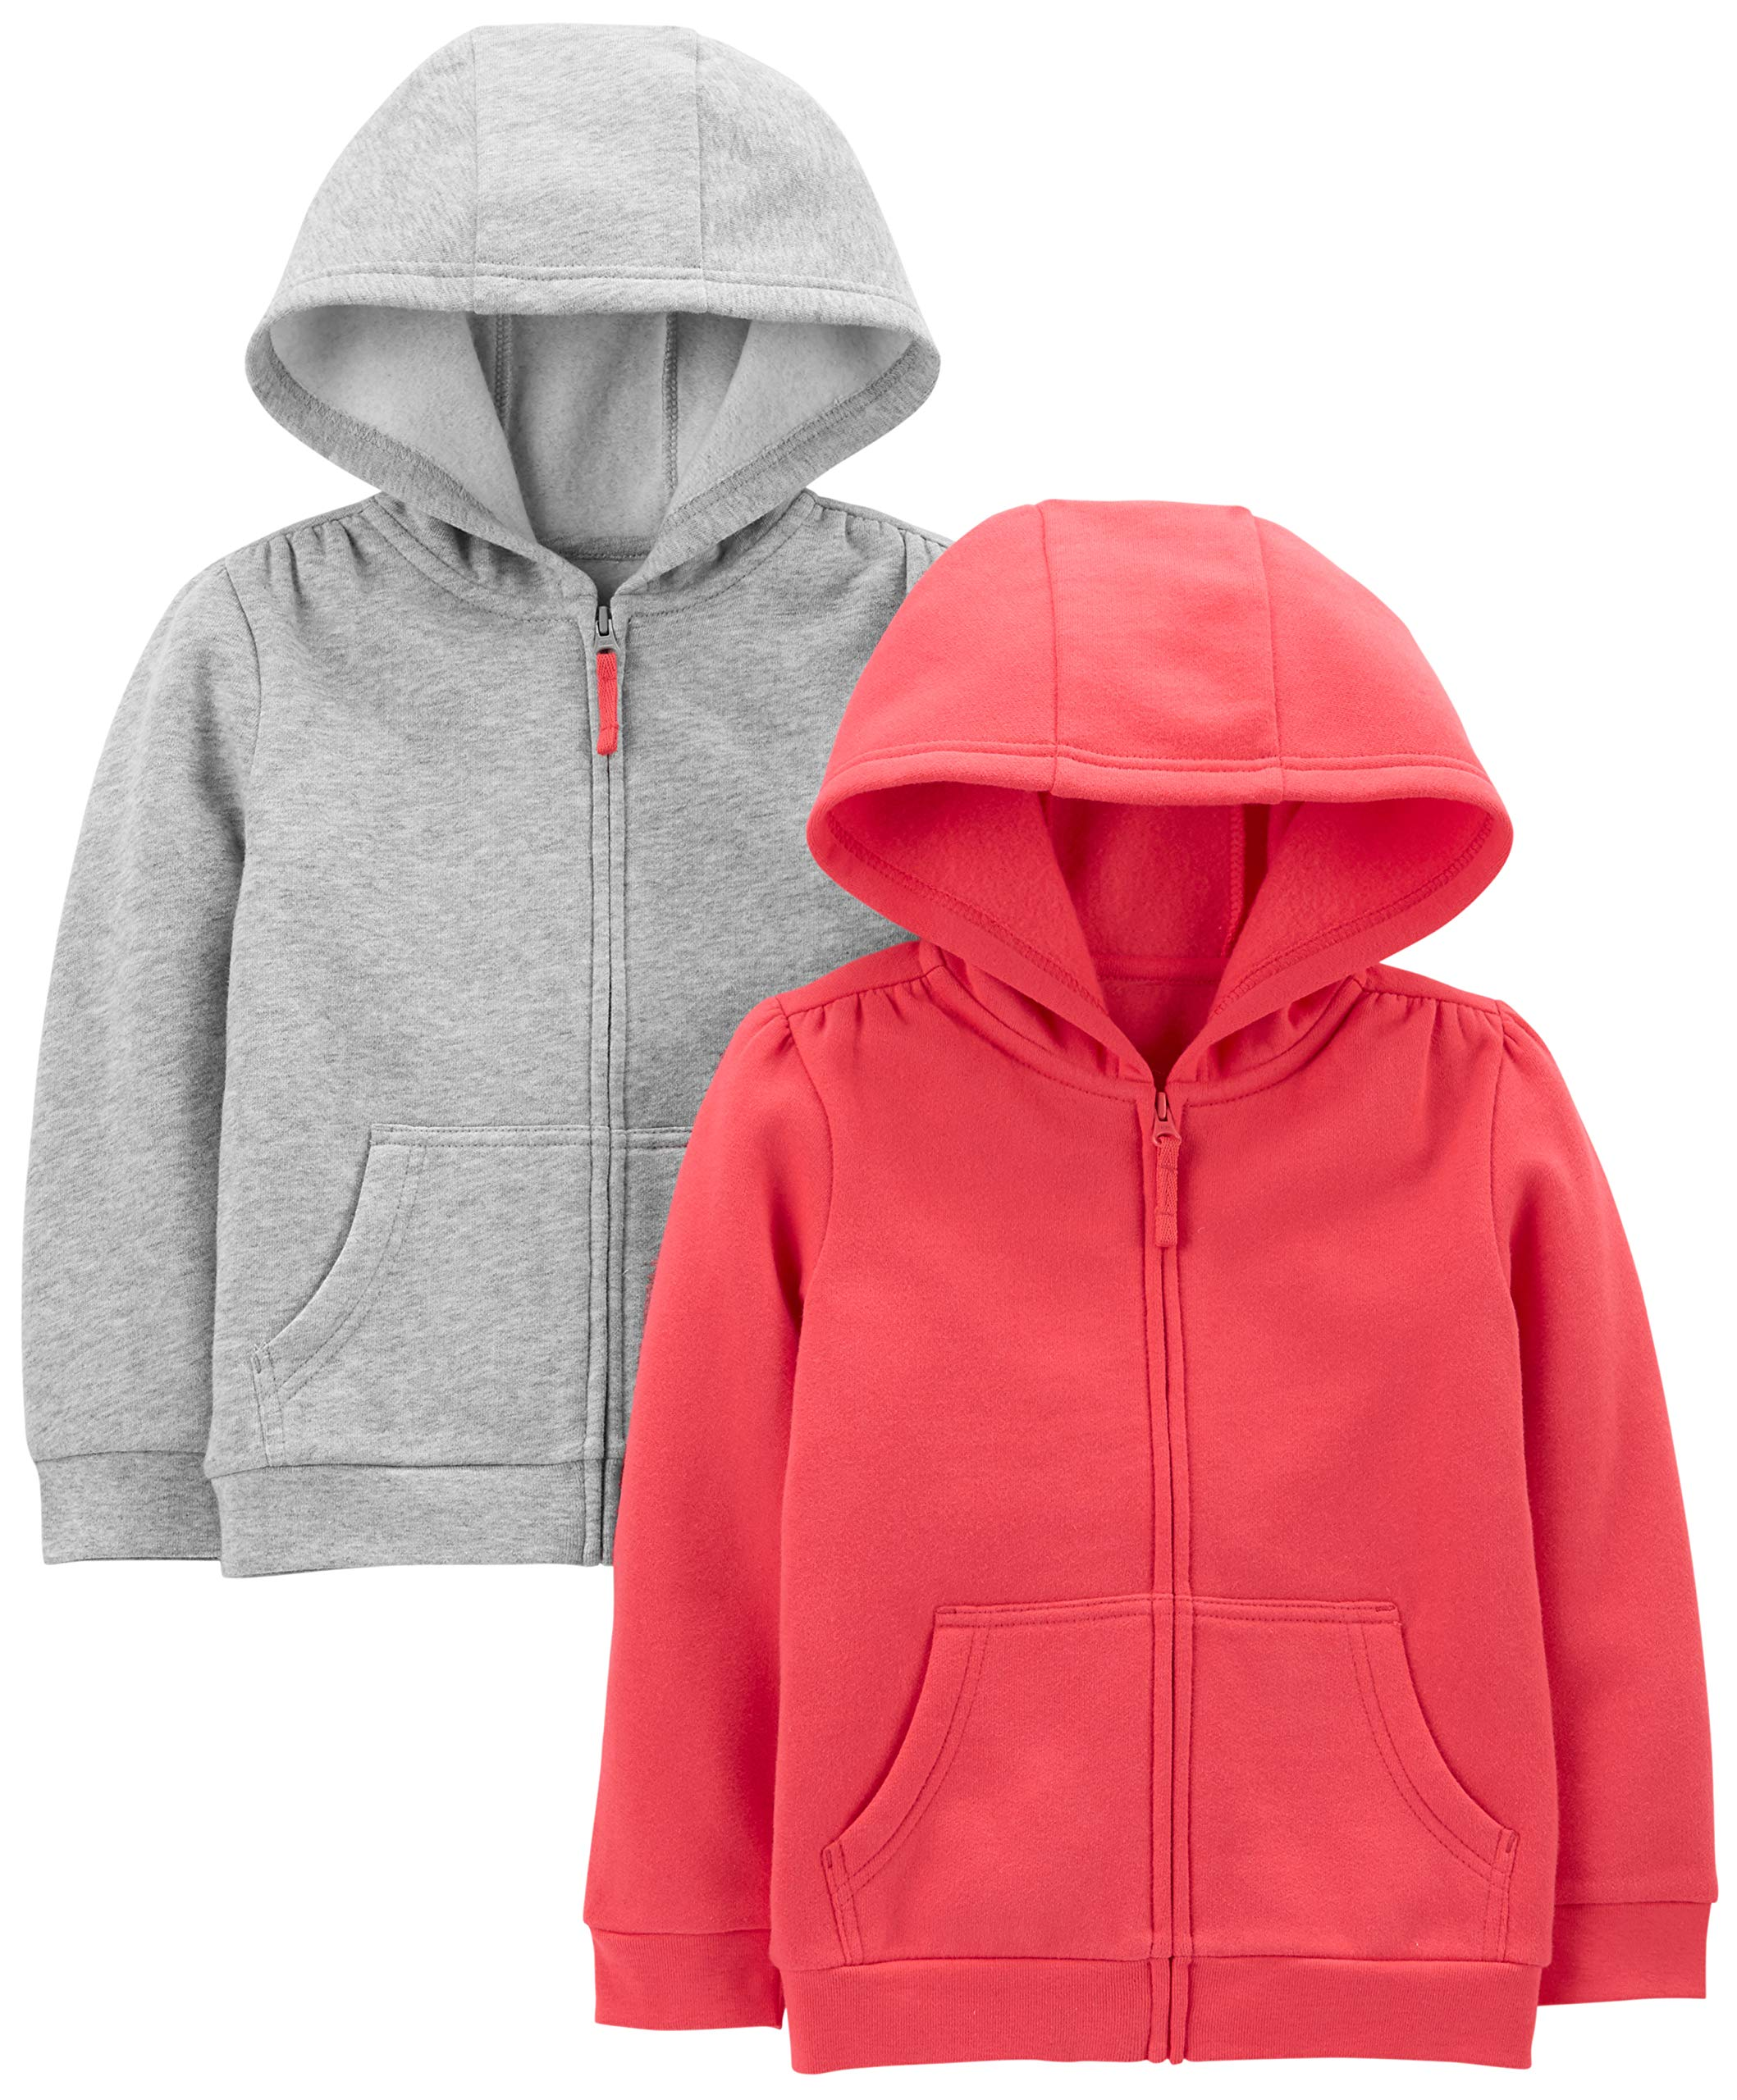 Simple Joys by Carter's Girls' Toddler 2-Pack Fleece Full Zip Hoodies, Pink/Gray, 4T